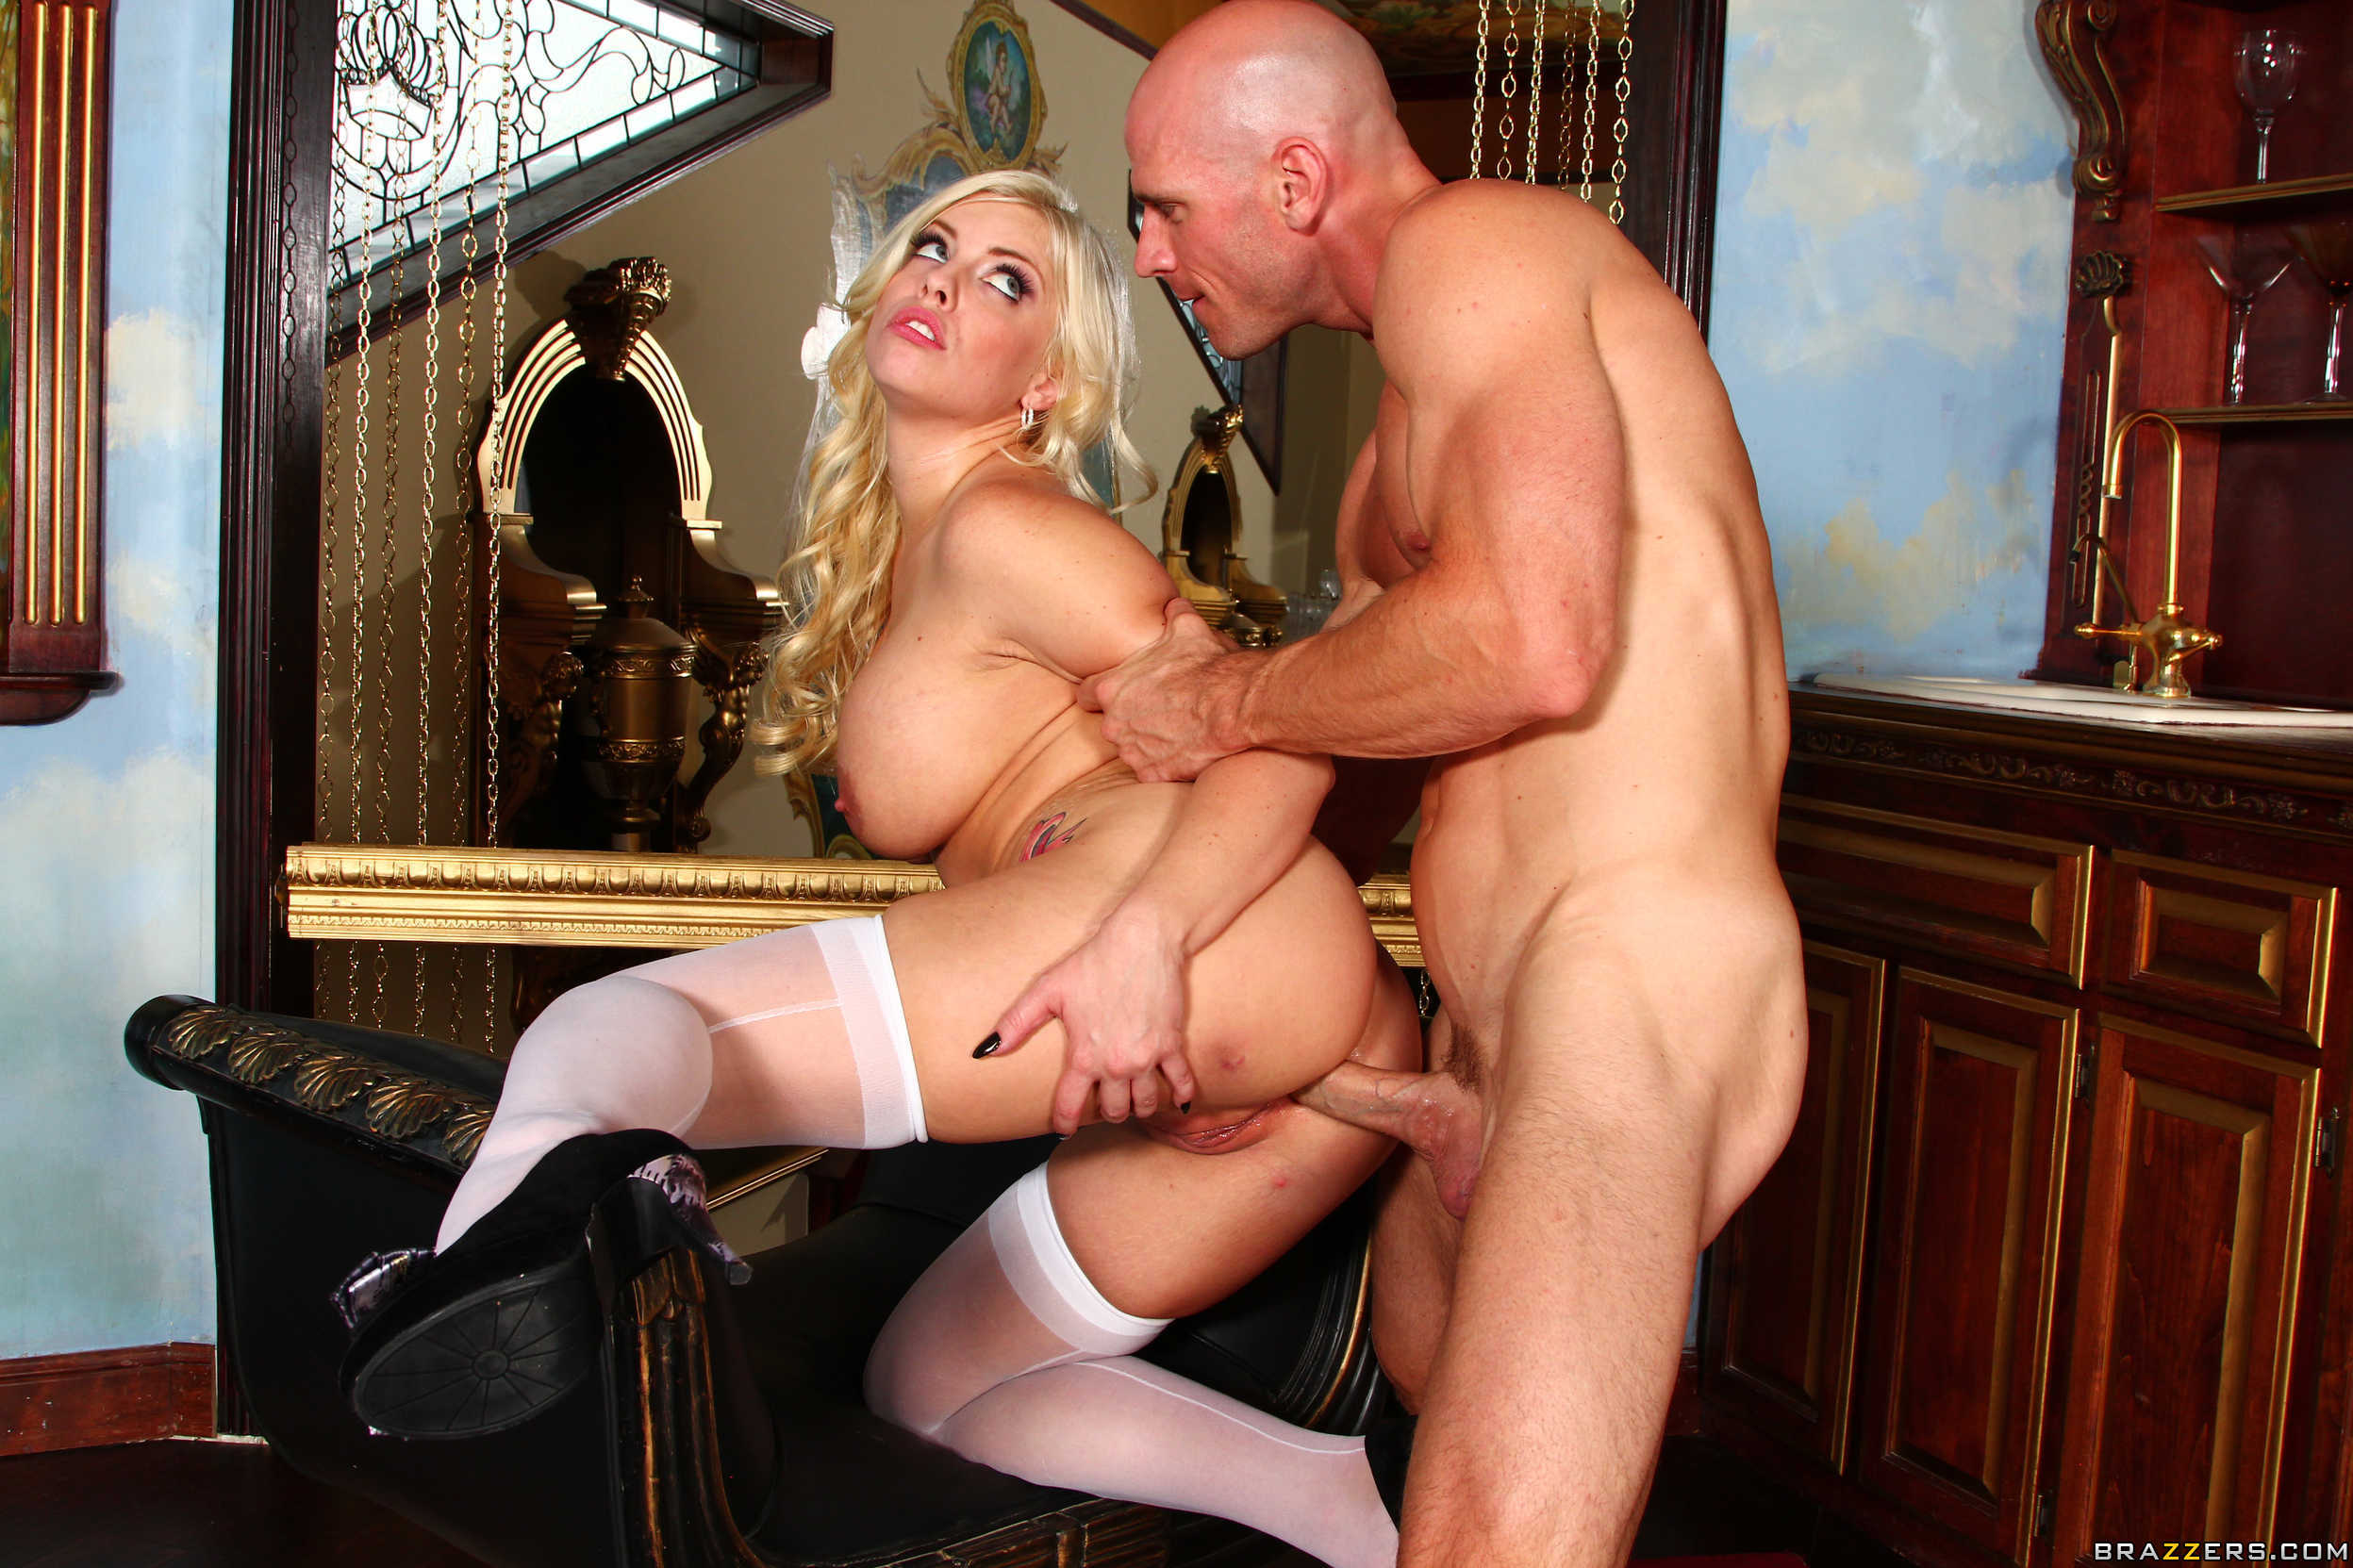 Big Tits At School - Britney Amber Torrent Download